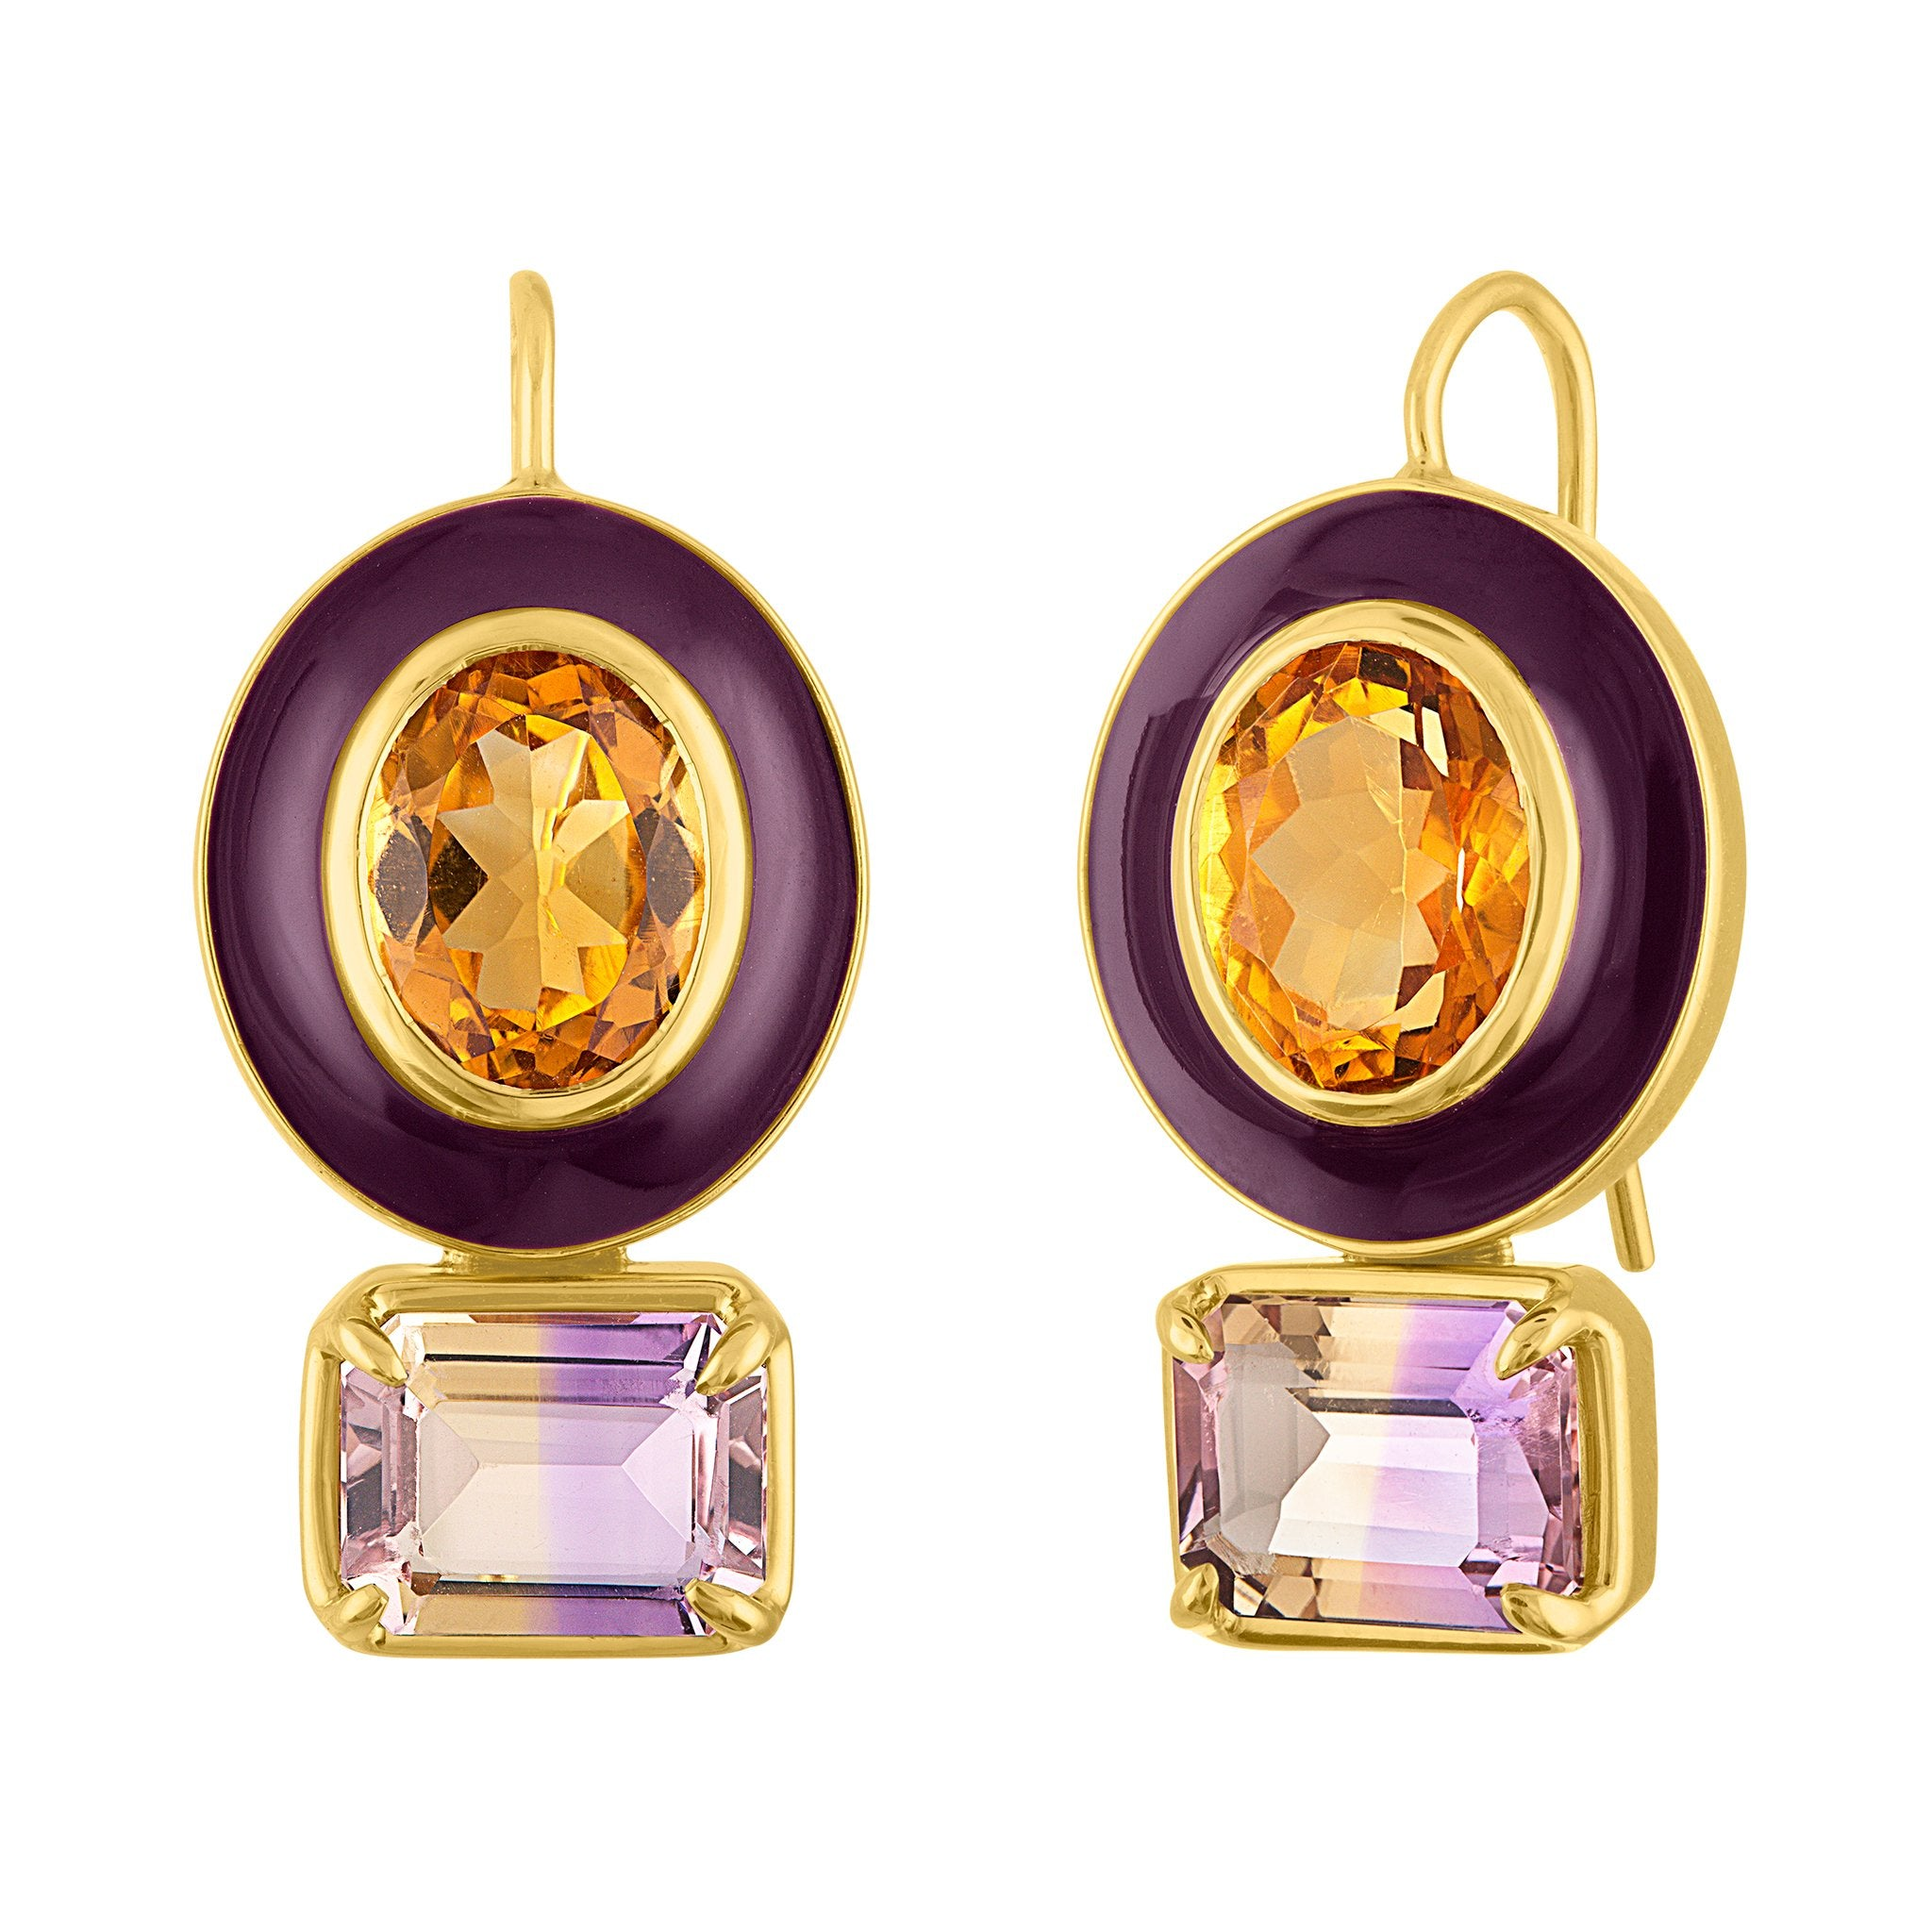 POP Enamel Earrings - 14k Gold, Citirine, Ametrine, Enamel